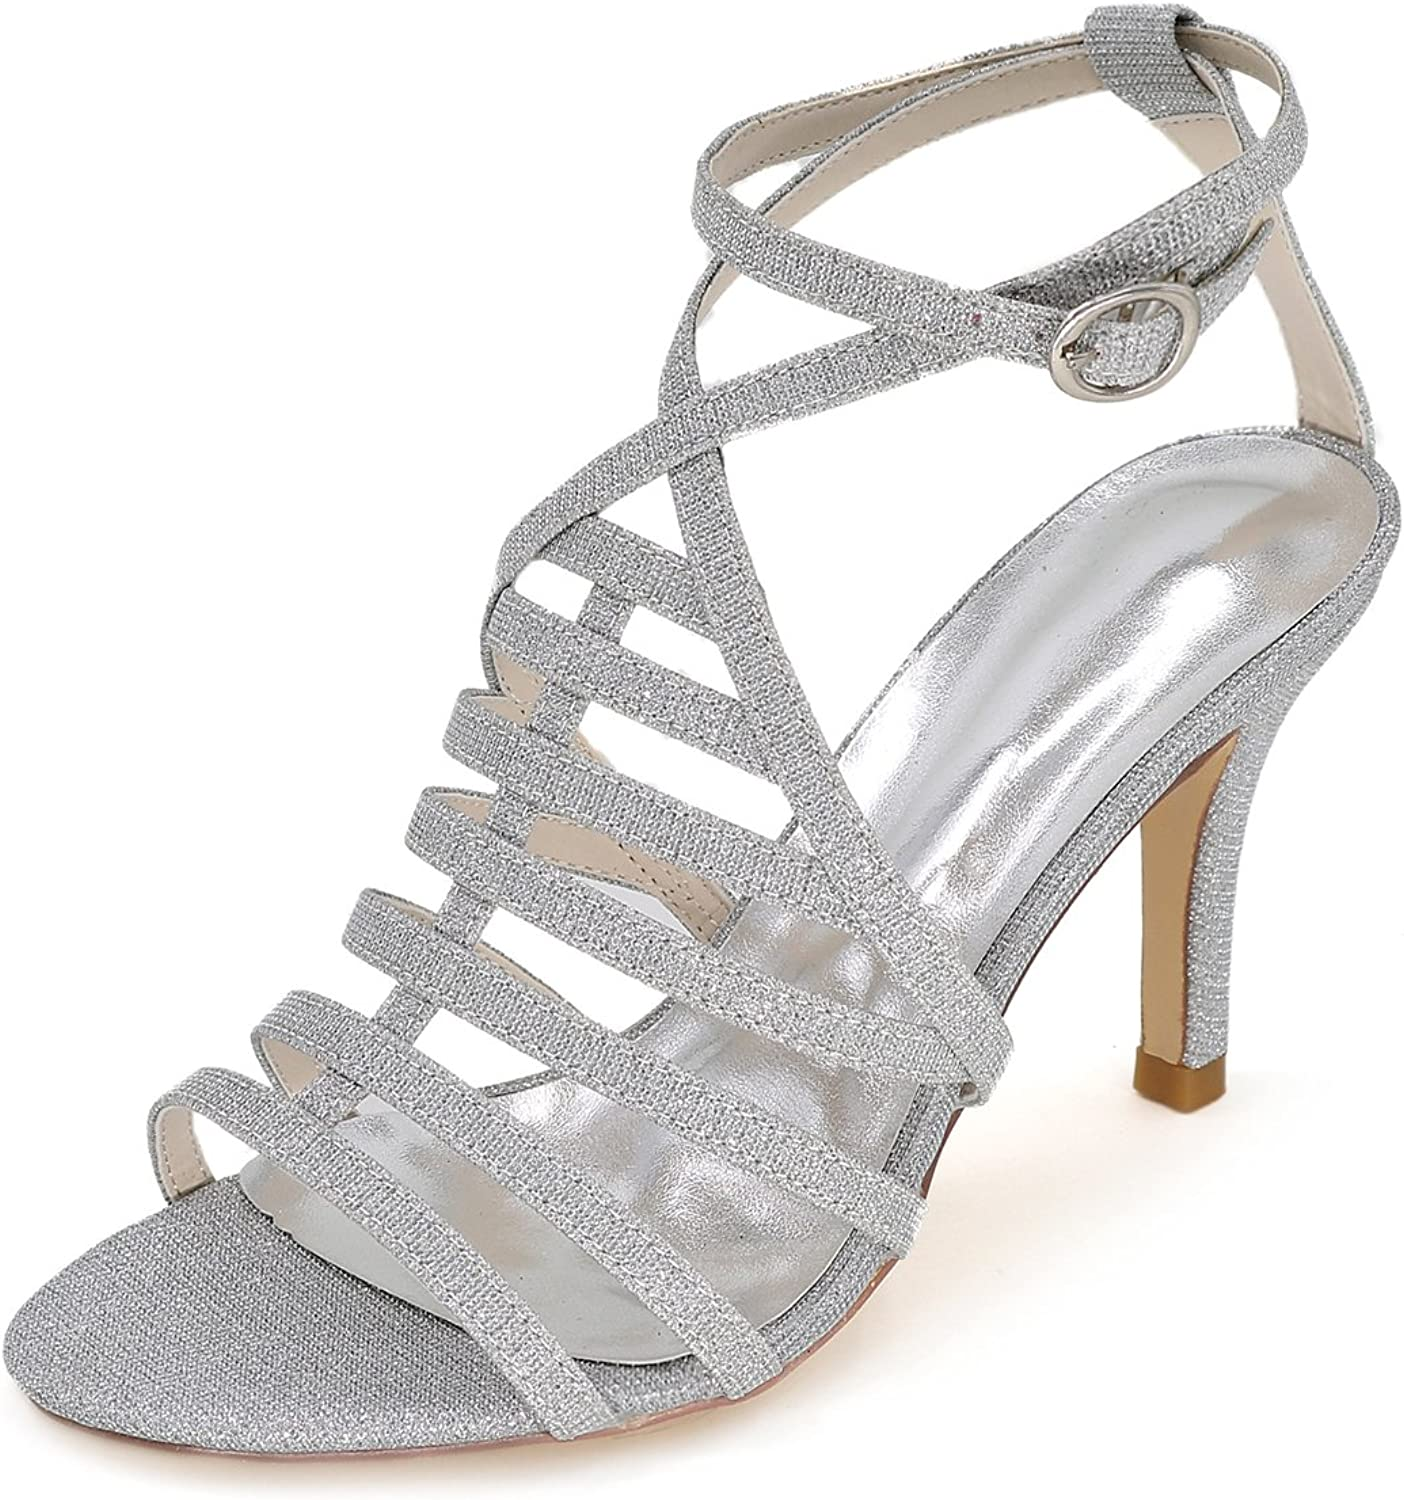 Wedding Heels Max 79% OFF OFFicial site Peep Toe Shoes Rhines Bride High for